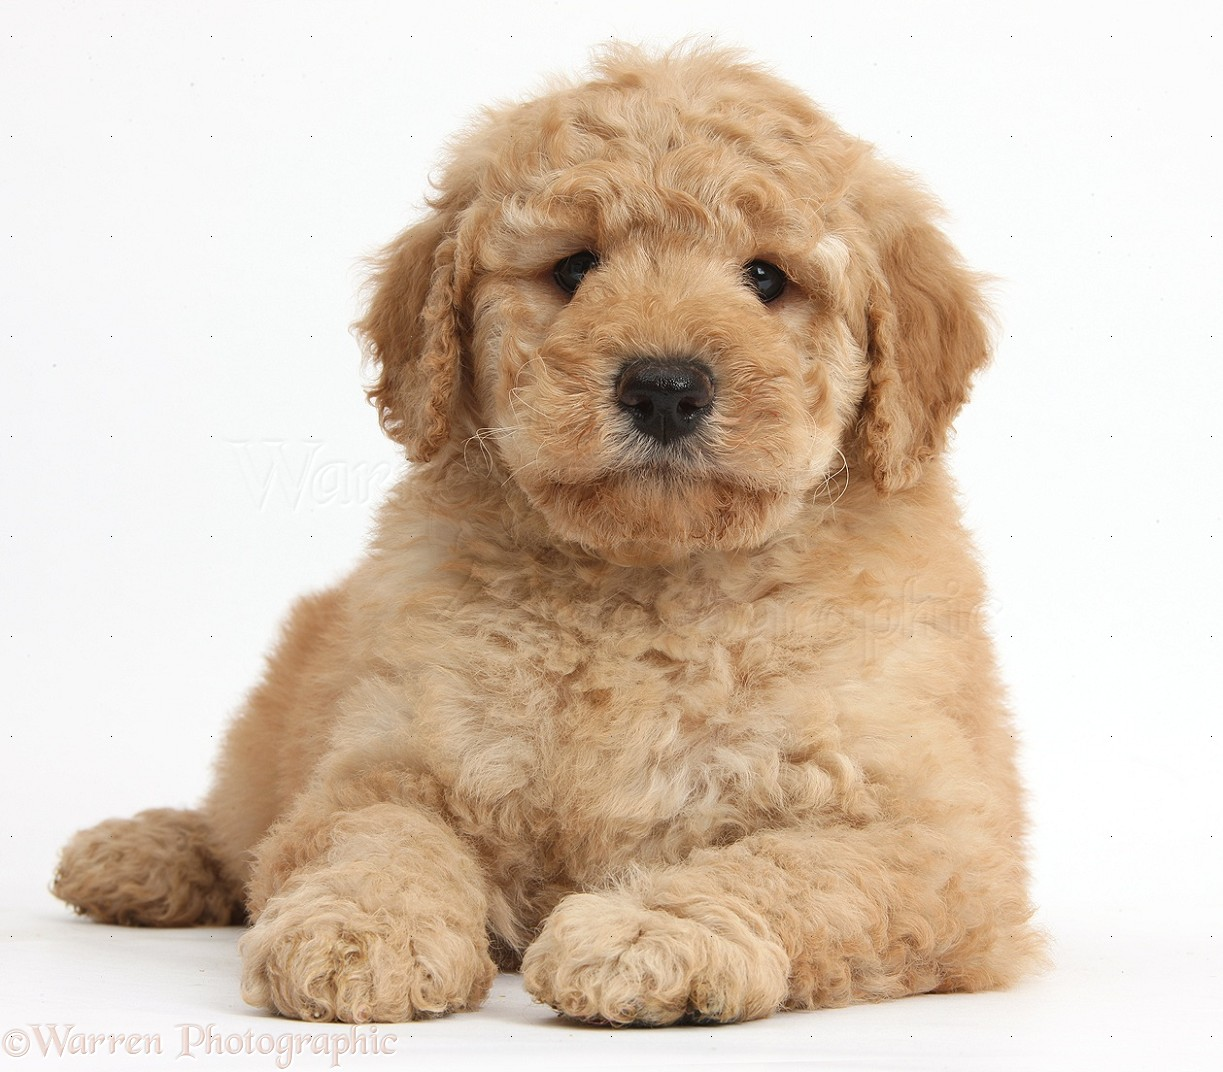 Dog Cute Toy Goldendoodle Puppy Photo Wp37992